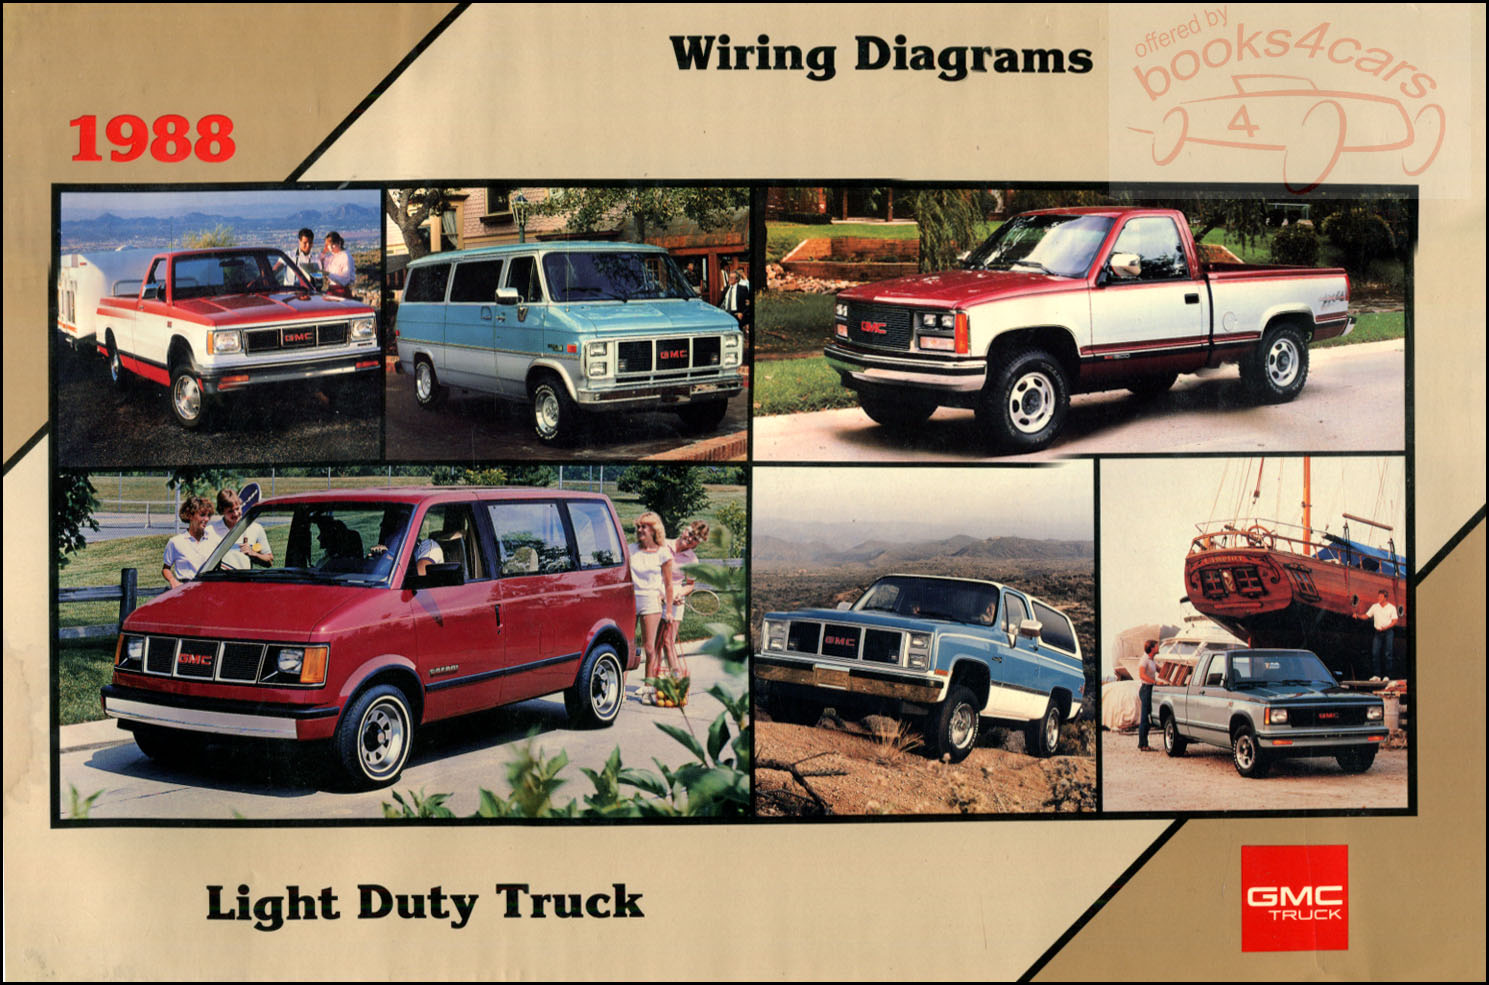 Pump Wiring Diagram 2000 Chevy Astro Van Wiring Diagram 2000 Chevy